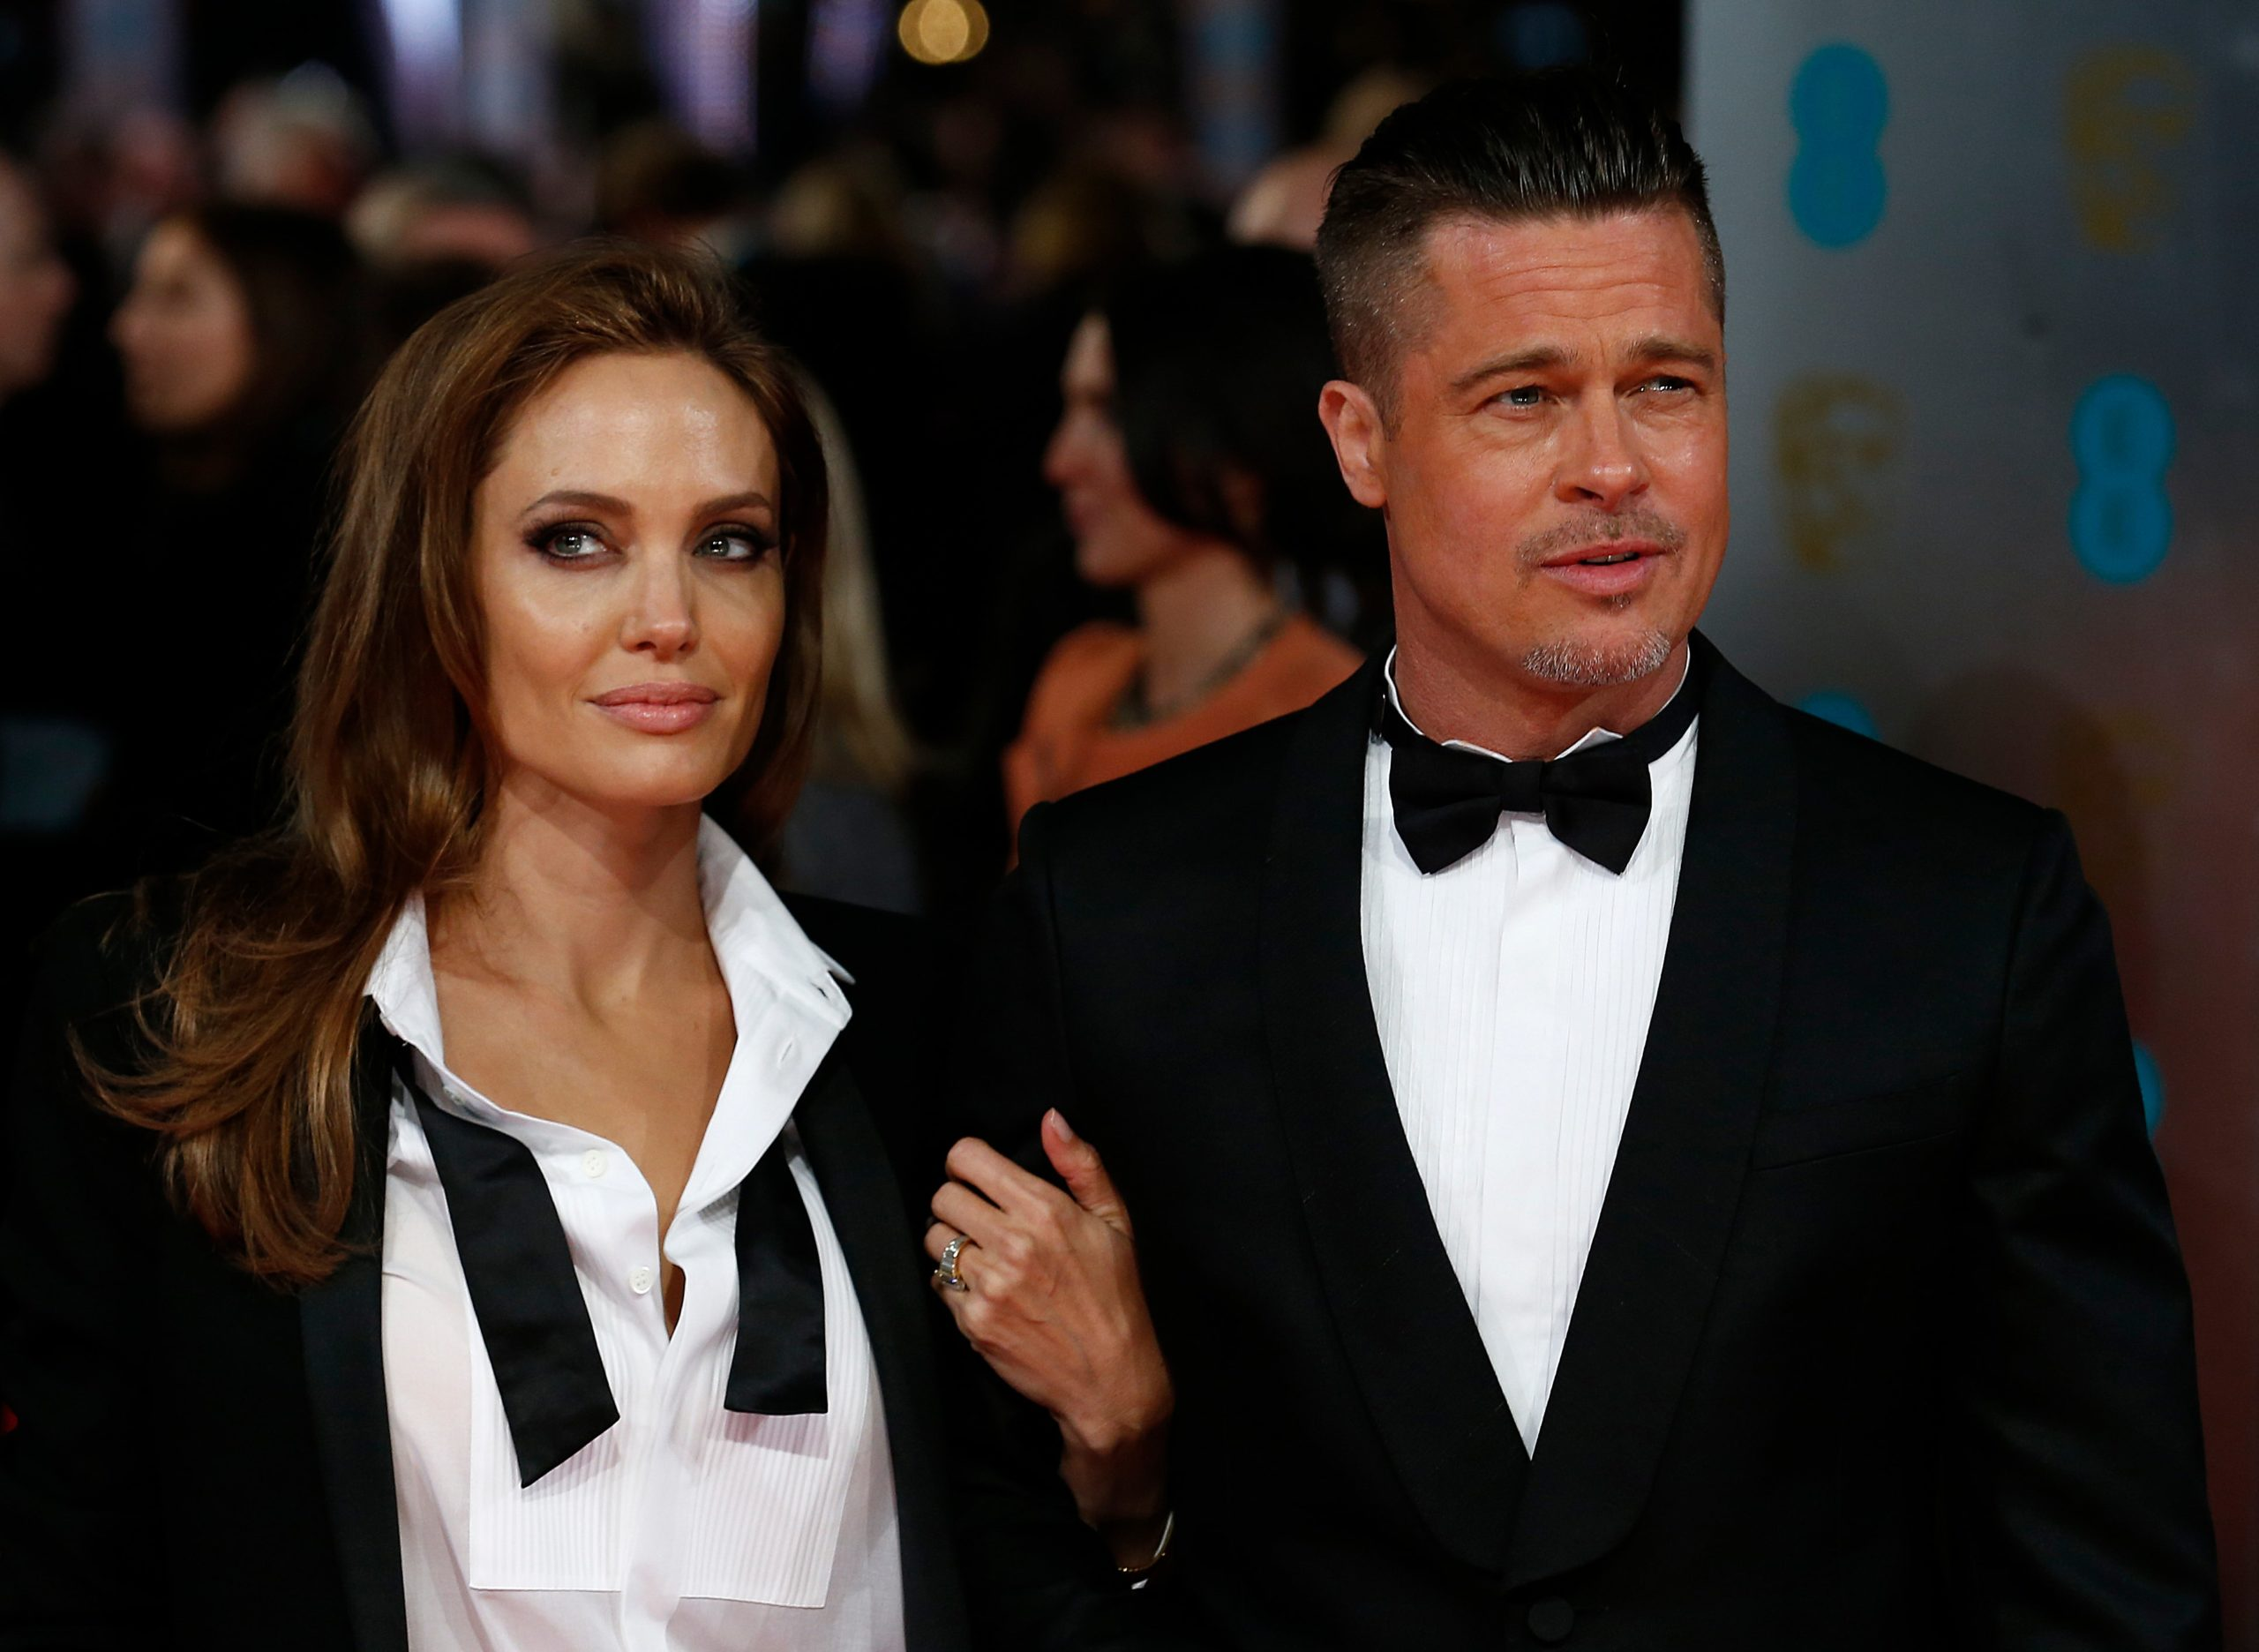 Brad Pitt and Angelina Jolie Divorce Getting Messier And Judge Disqualification Defended By AJ!